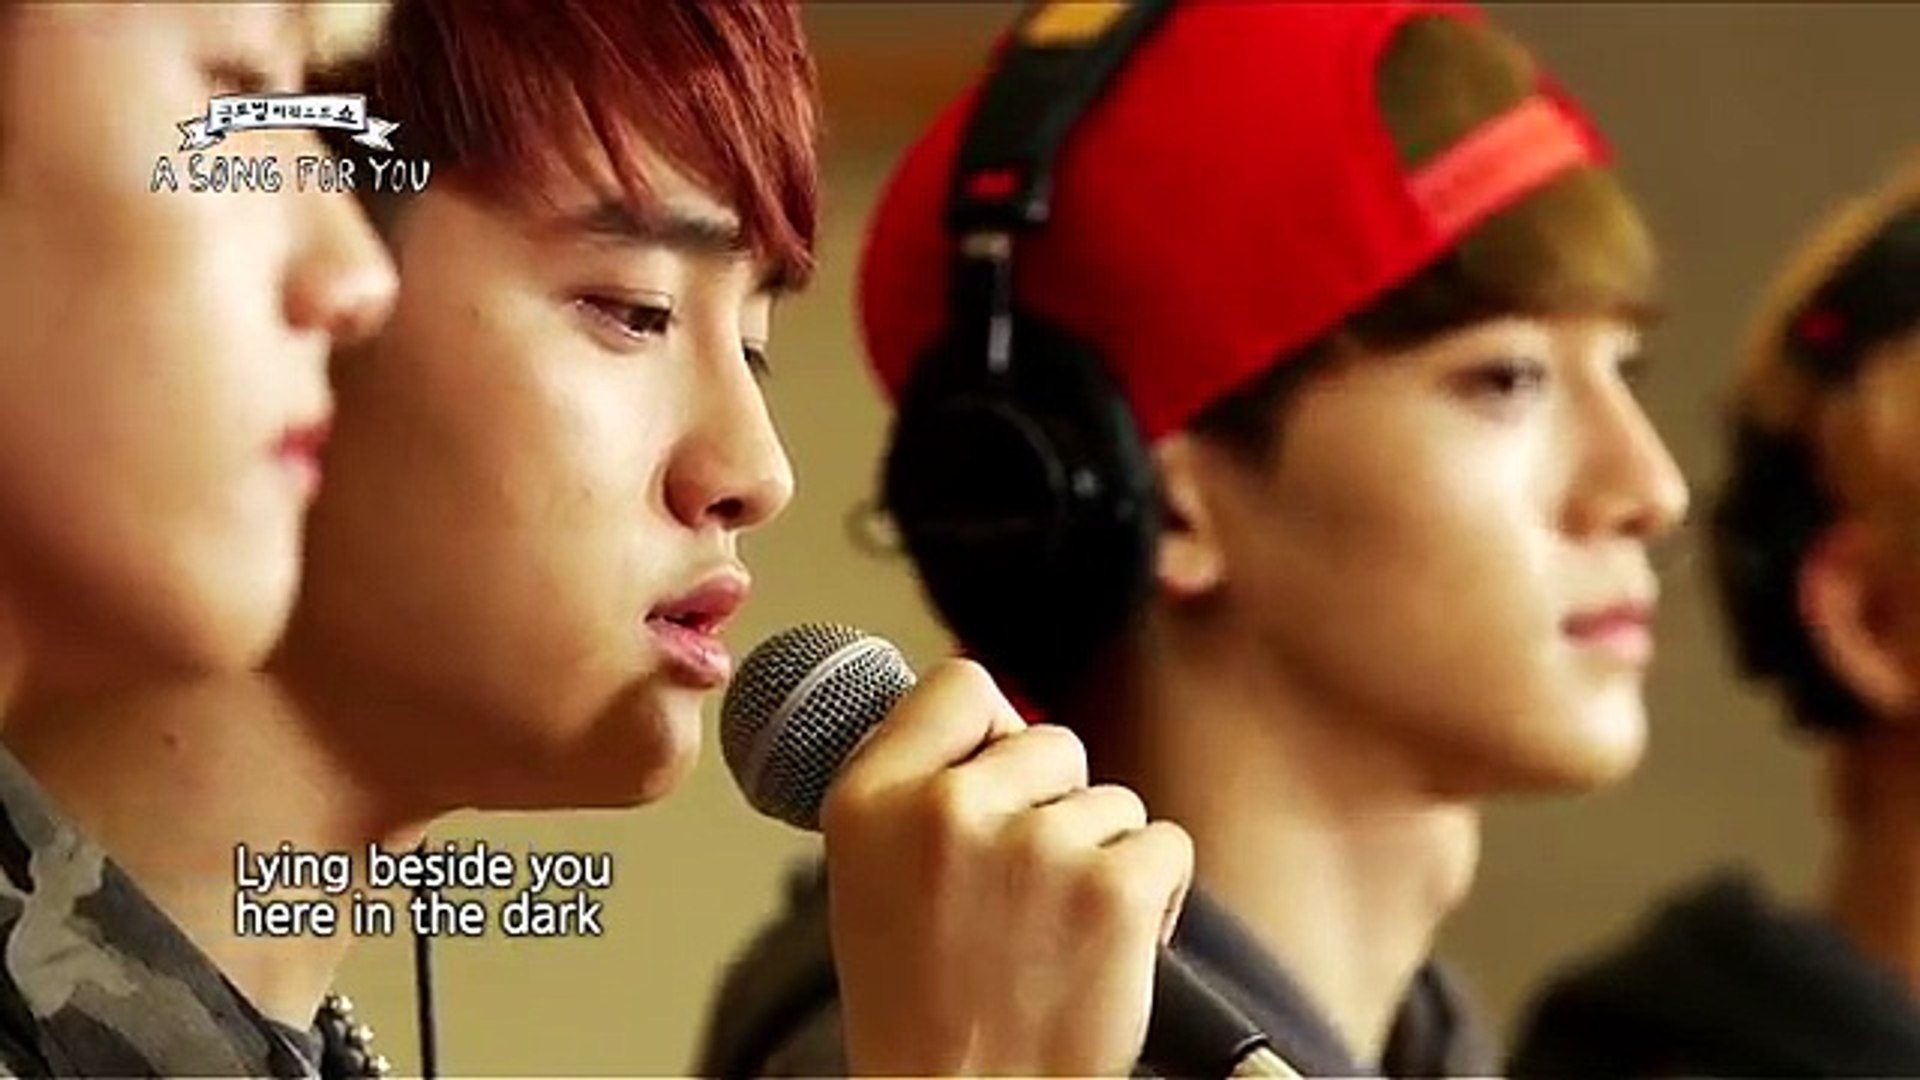 Global Request Show - A Song For You - Open Arms by EXO (2013.08.23)